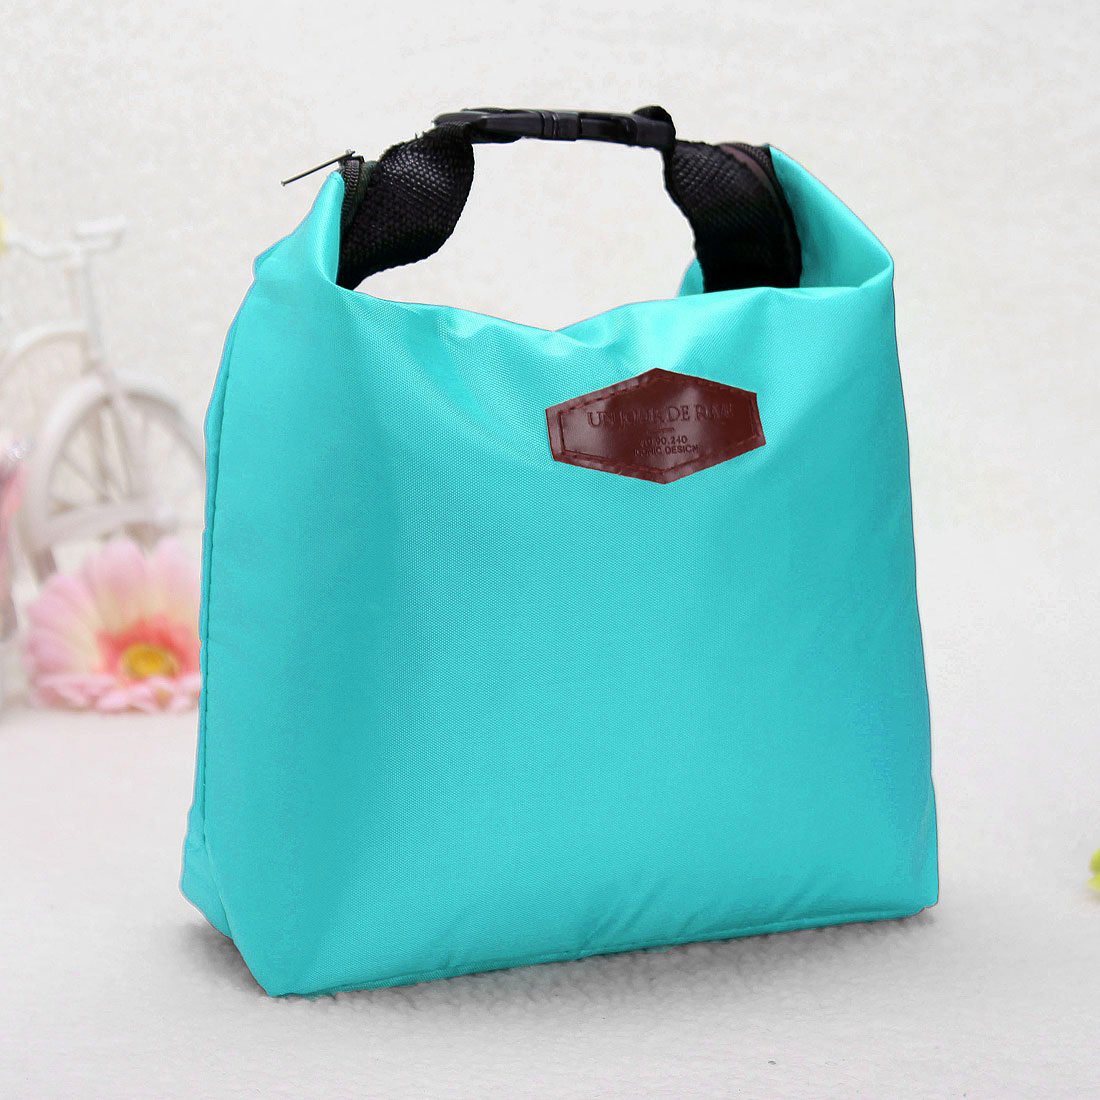 Insulated Carrying Bag : Thermal insulated waterproof lunch tote storage picnic